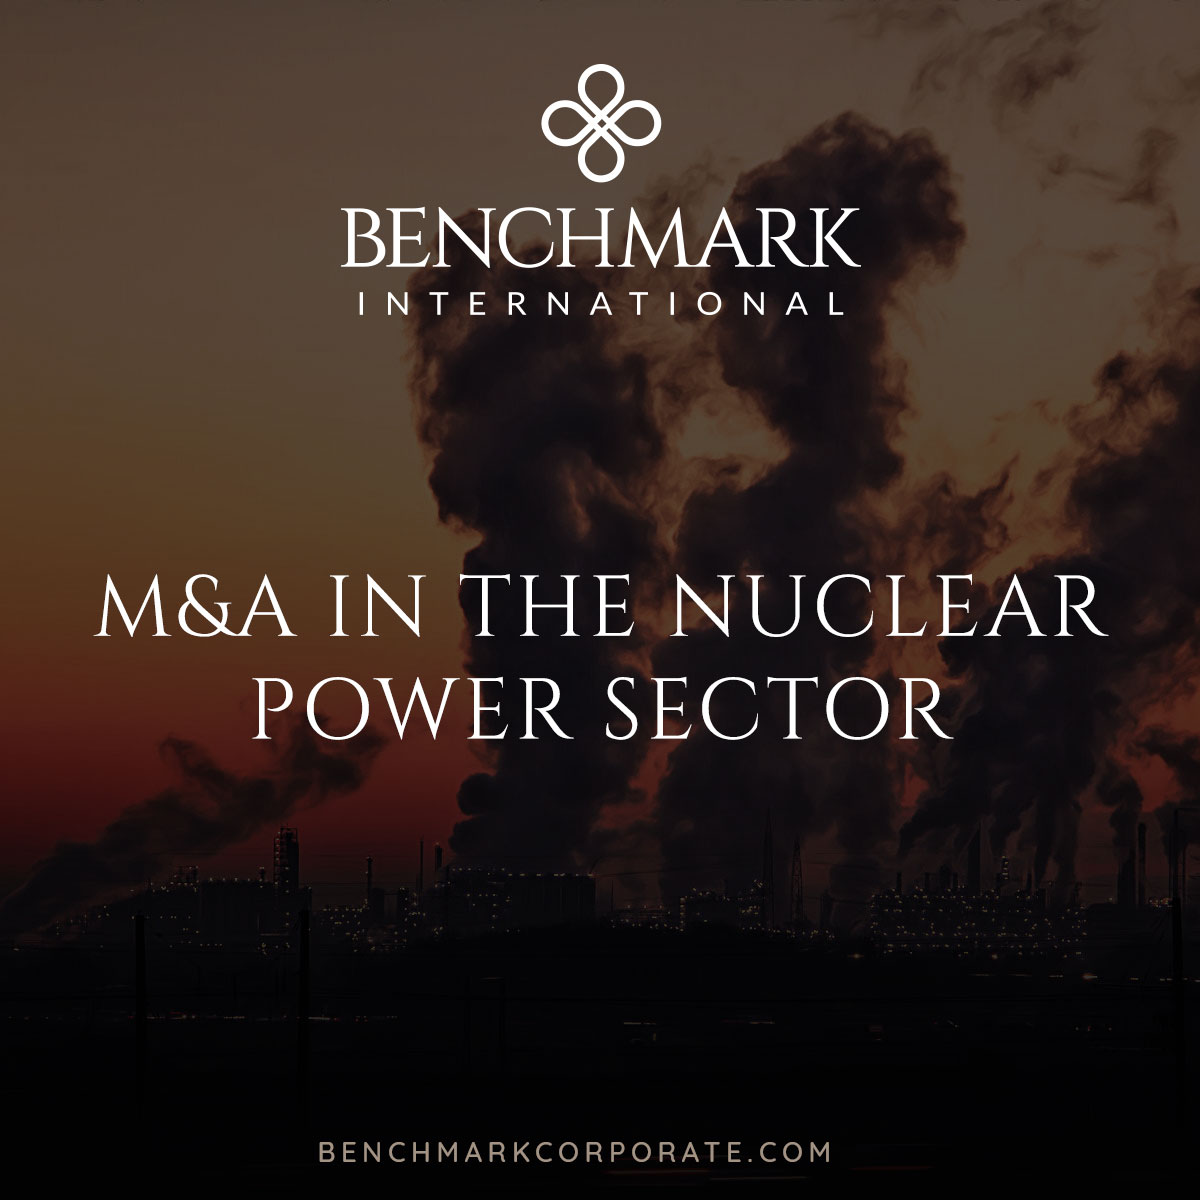 Nuclear_Power_Sector-Social